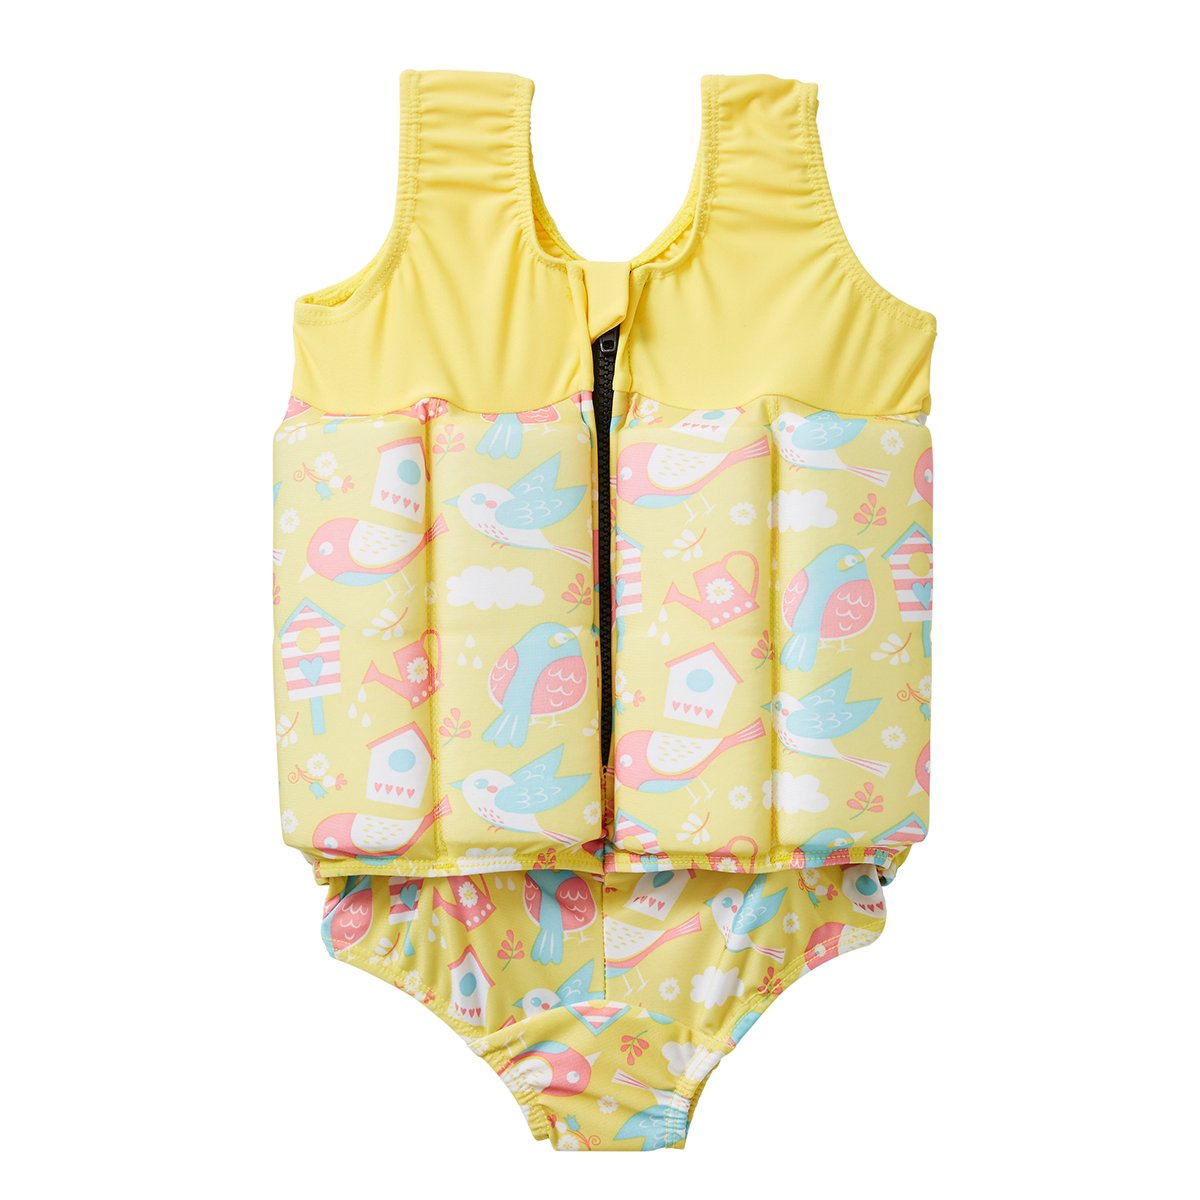 Amazon.com : Splash About Collections Float Suit - Adjustable Buoyancy, 1-6 Years (2-4 Years (Chest: 56cm Length: 40cm)), Pink Blossom : Baby